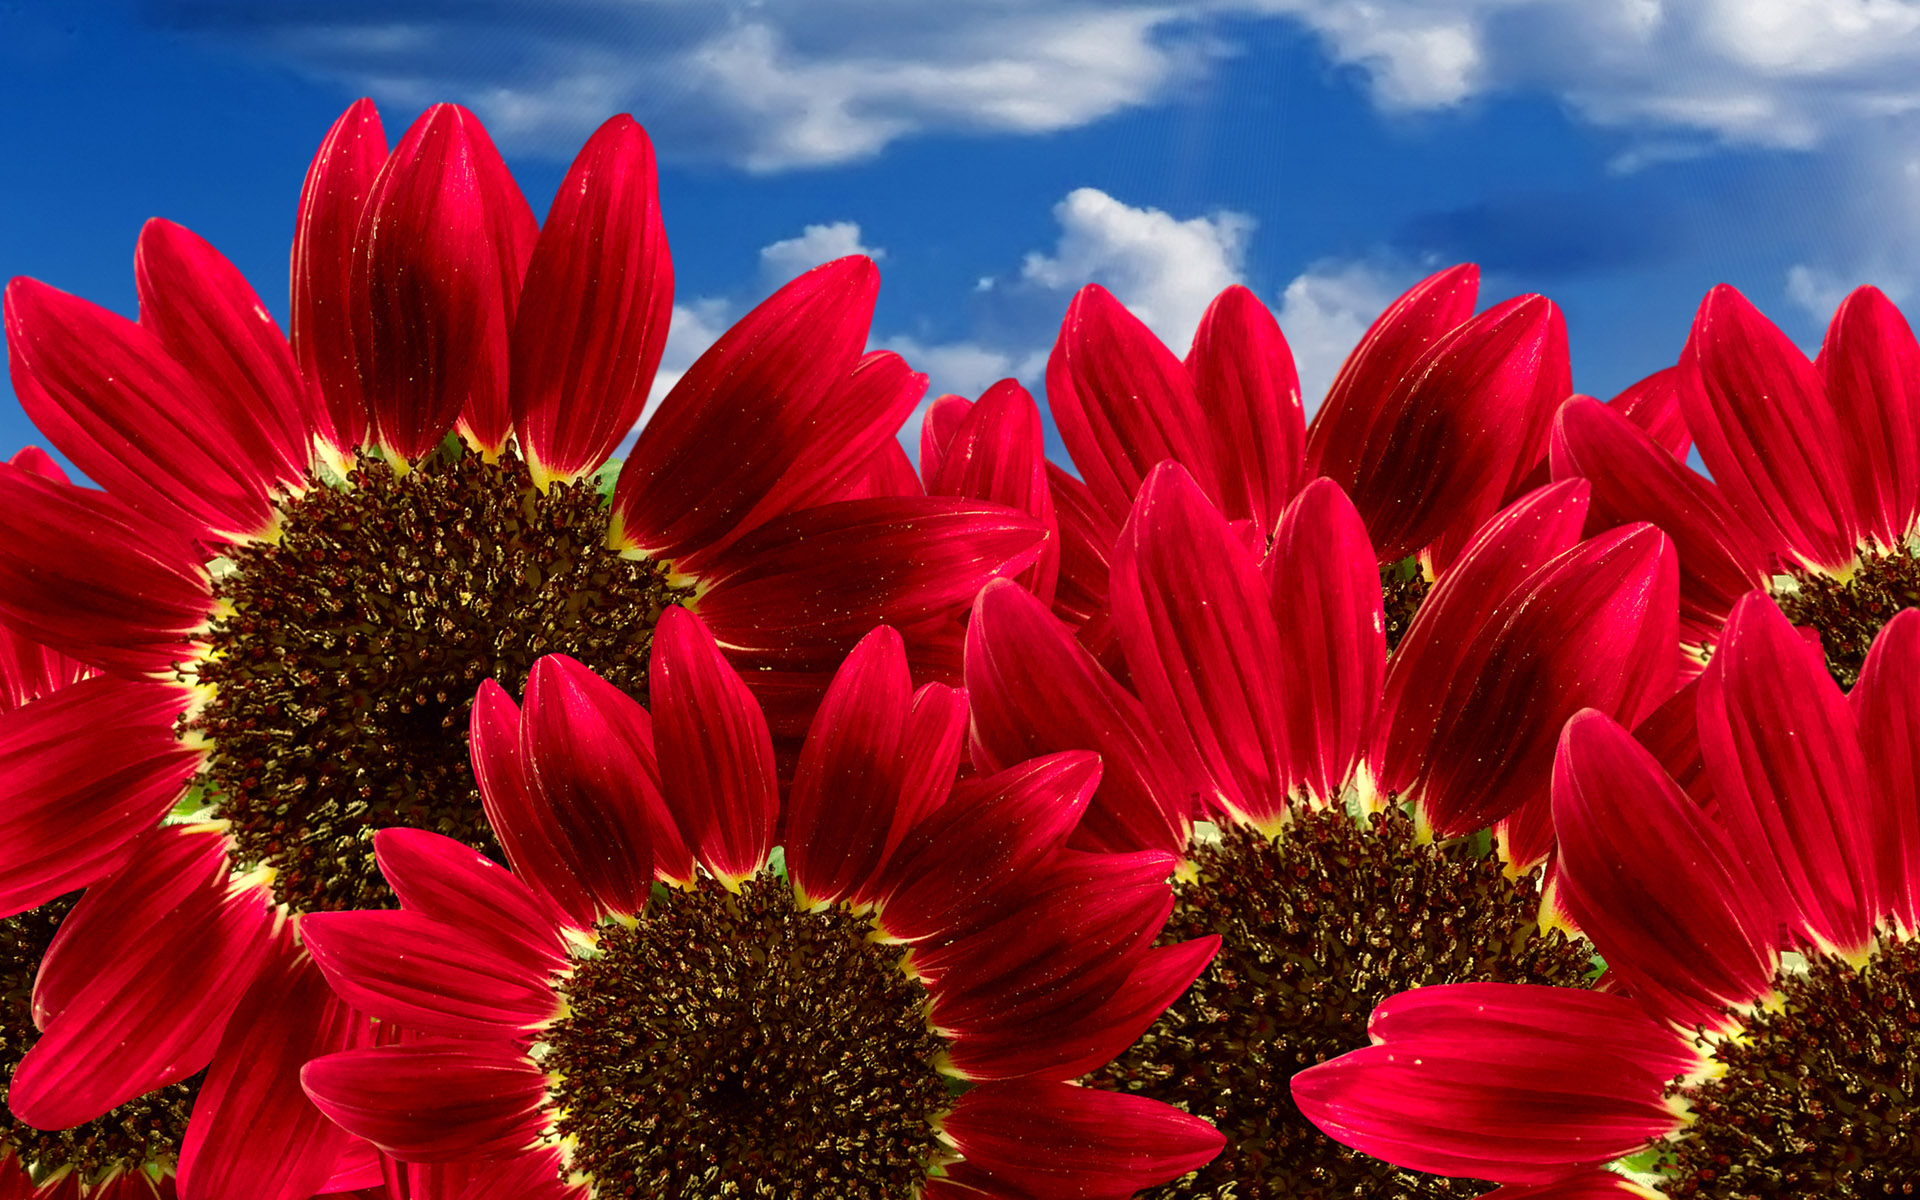 This picture takes the blue sky as the background and brings out the main subject – Pure Red Sunflowers blooming in the sky.